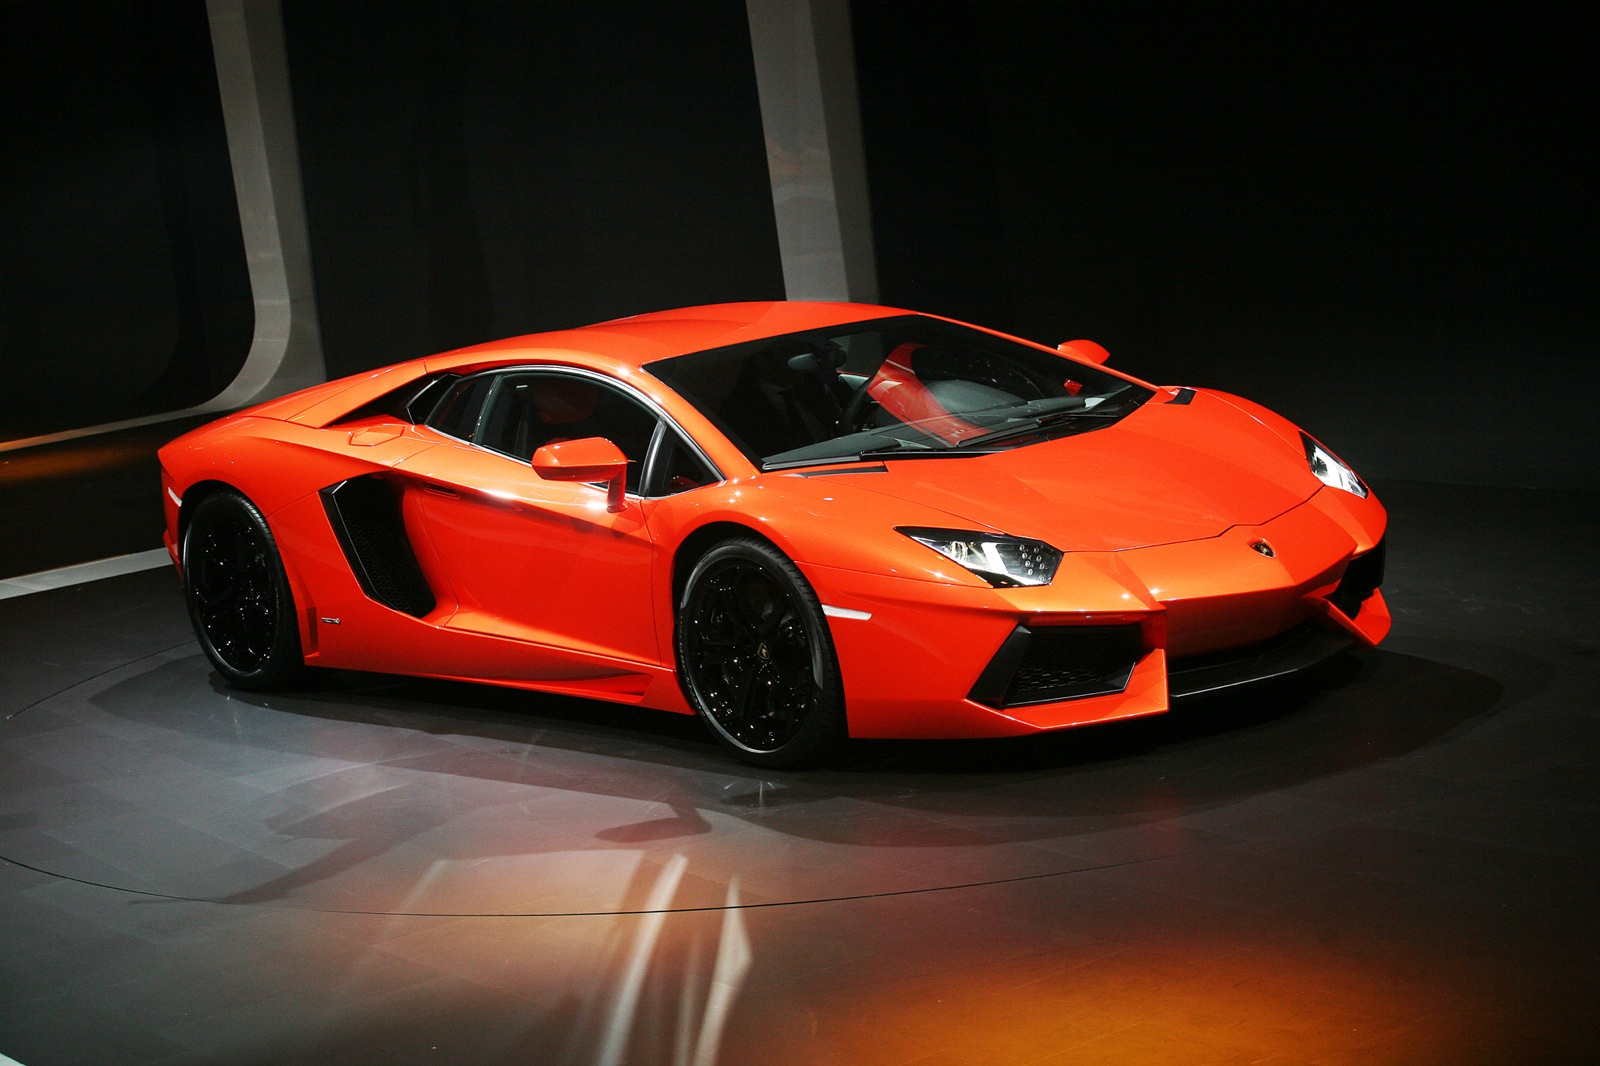 2013 Lamborghini Aventador Review, Ratings, Specs, Prices, And Photos   The  Car Connection